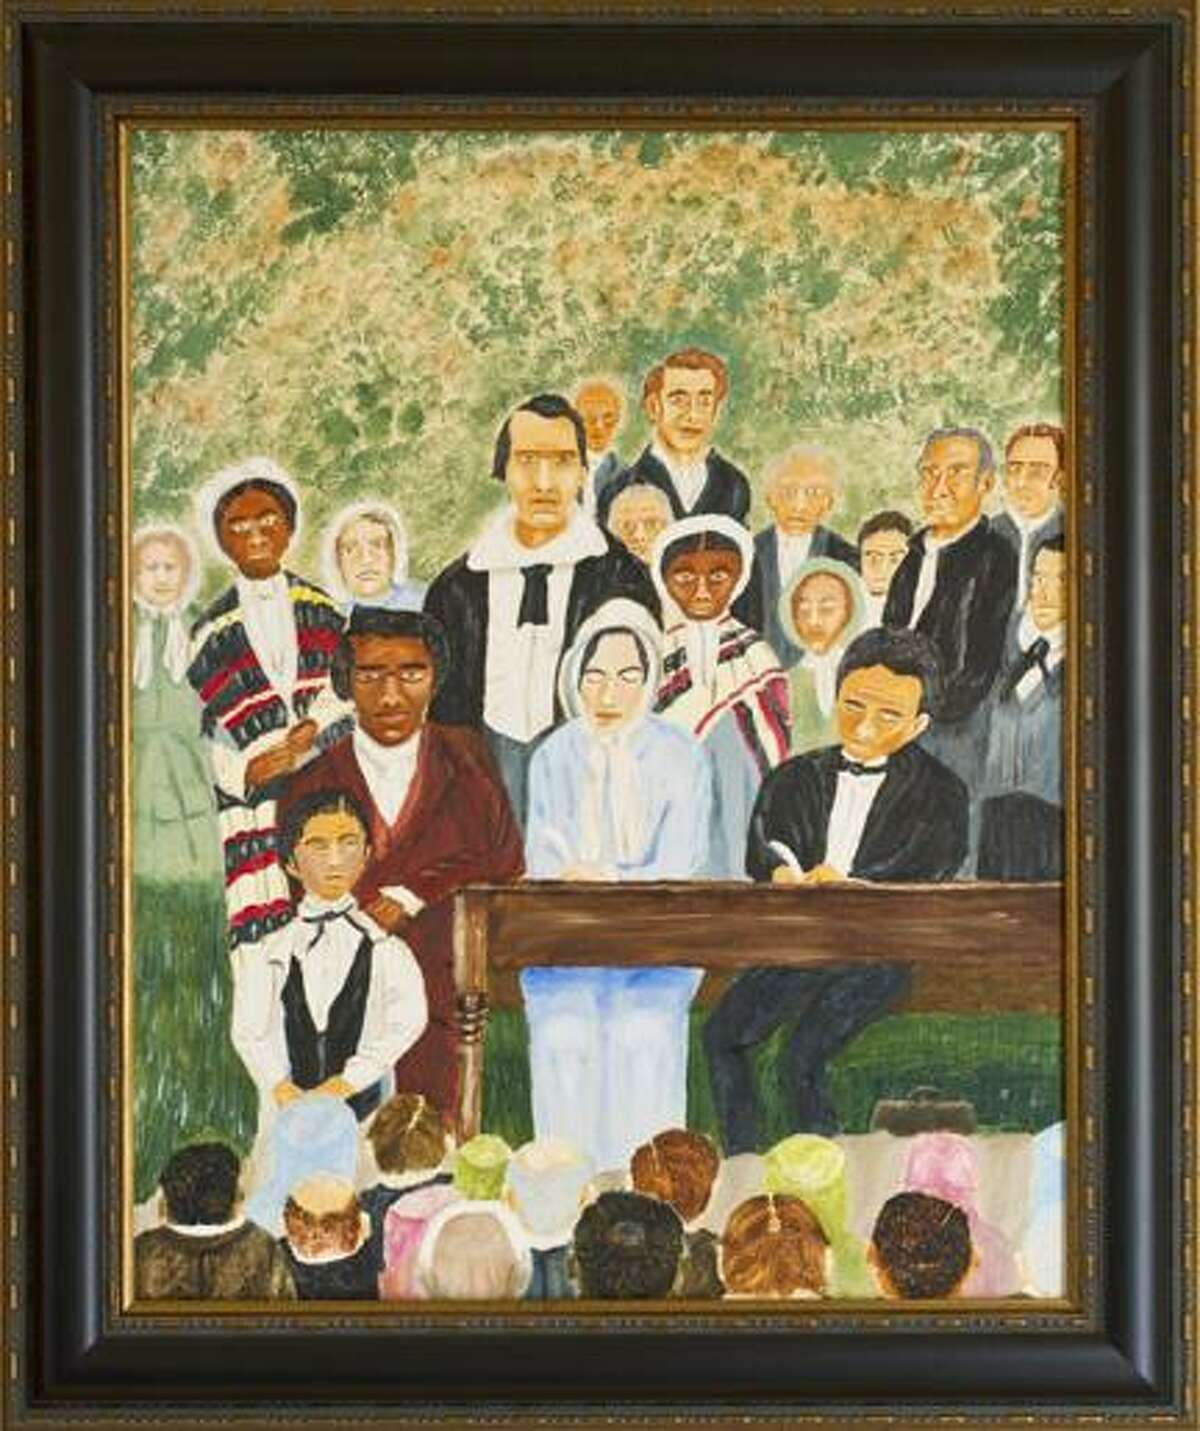 Photo Courtesy the Gerrit Smith EstateOil painting created by Bill Edmonston of the 1850 Cazenovia Convention organized to protest the Fugitive Slave Bill. Edmonston shares his responses to the protest in a program at the Gerrit Smith Estate National Historic Landmark in Peterboro at 2 p.m. on Sunday. Edmonston created an oil painting of the Cazenovia convention and he searches for a genealogical connection to two sisters who attended the meeting.